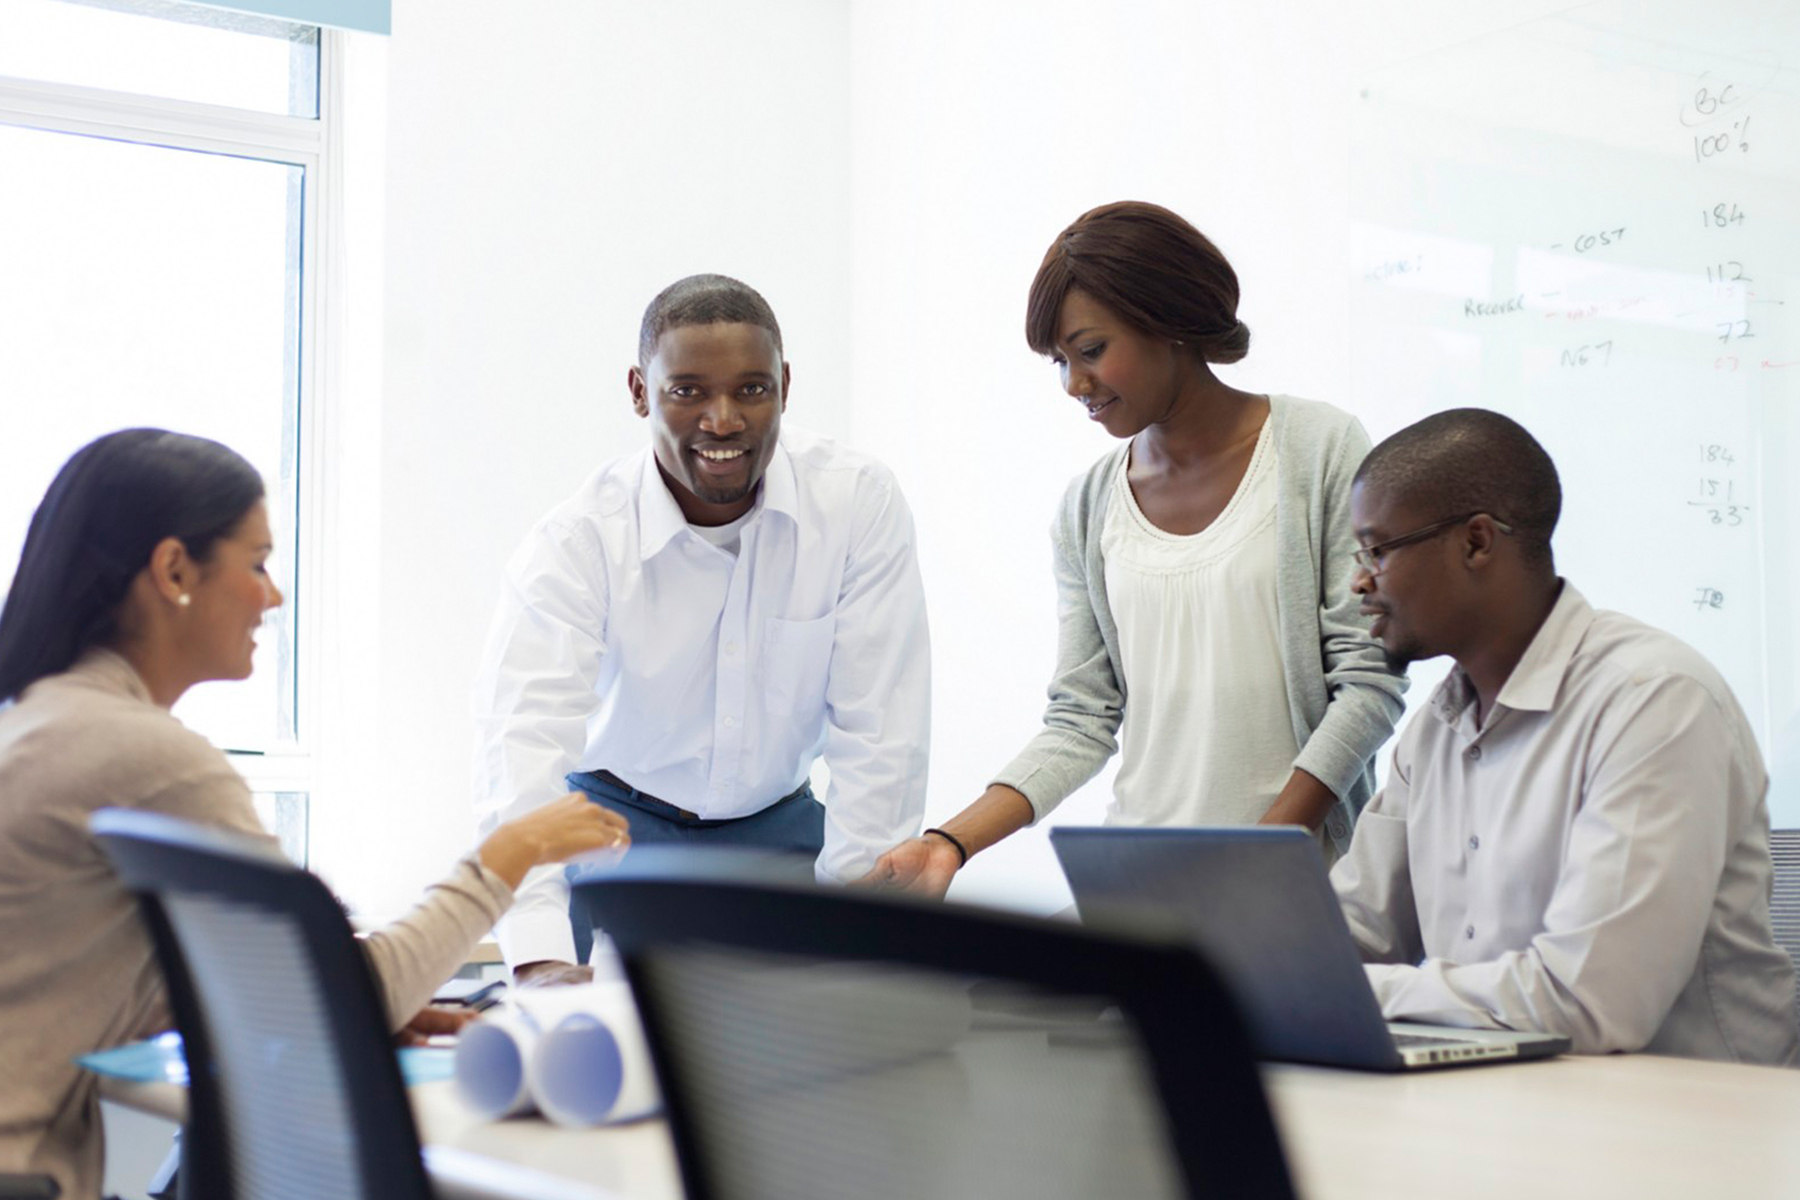 Group of people discussing in office